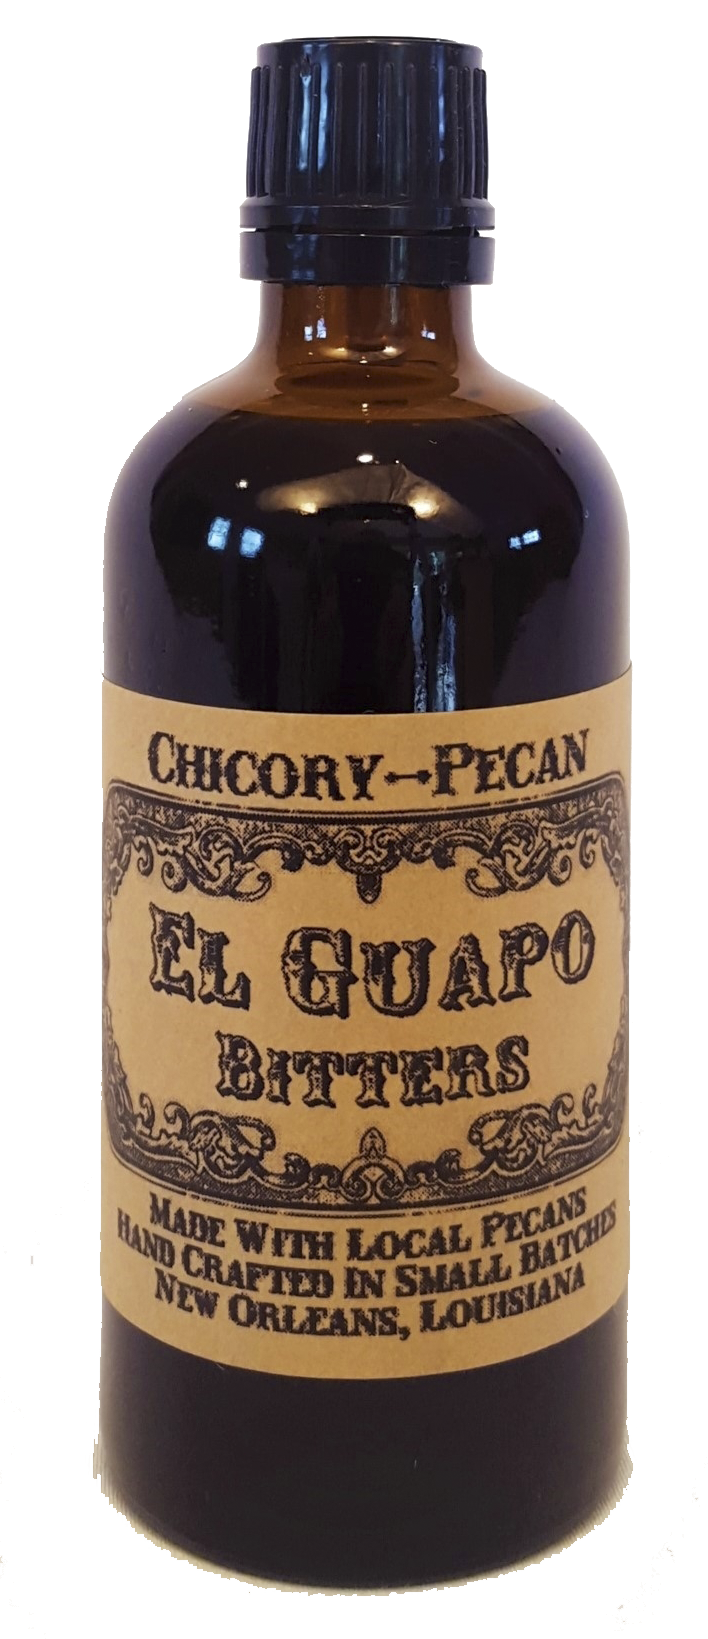 El Guapo chicory-pecan bitters distributed by Samoras Fine Foods for your culinary and cocktail applications.png